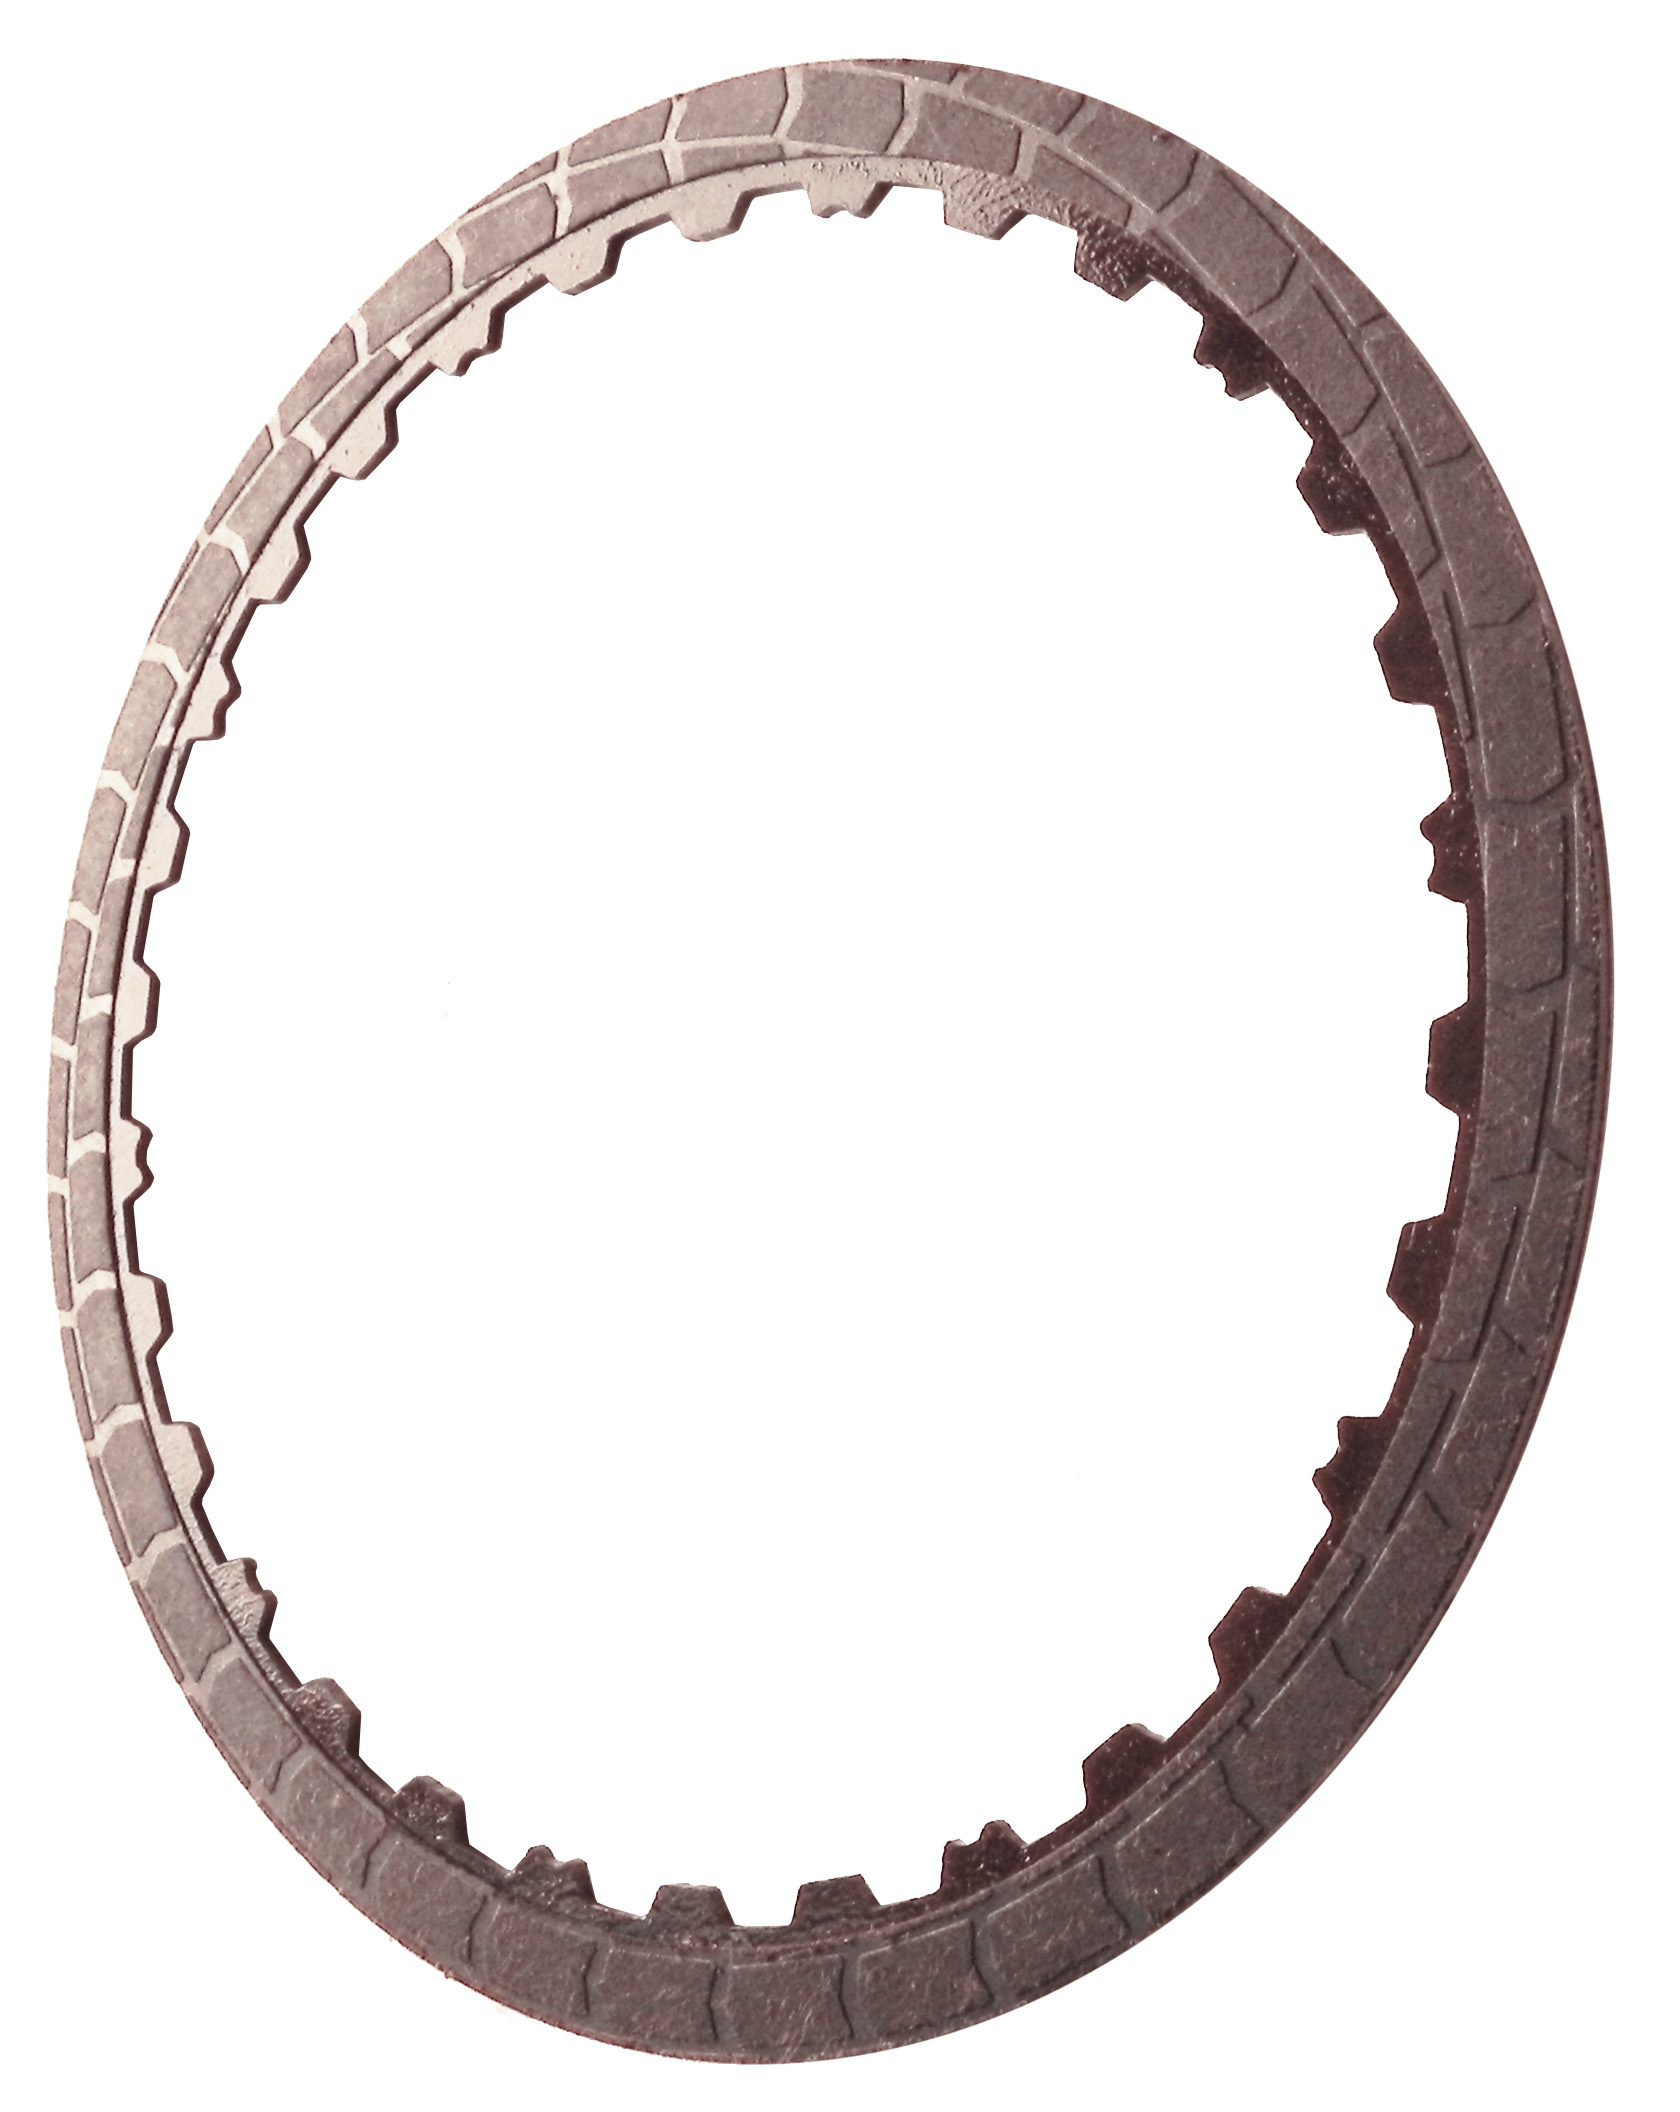 RH576612 | 2009-ON Friction Clutch Plate (HT) Hybrid Technology Forward Clutch Proprietary High Energy (HT)